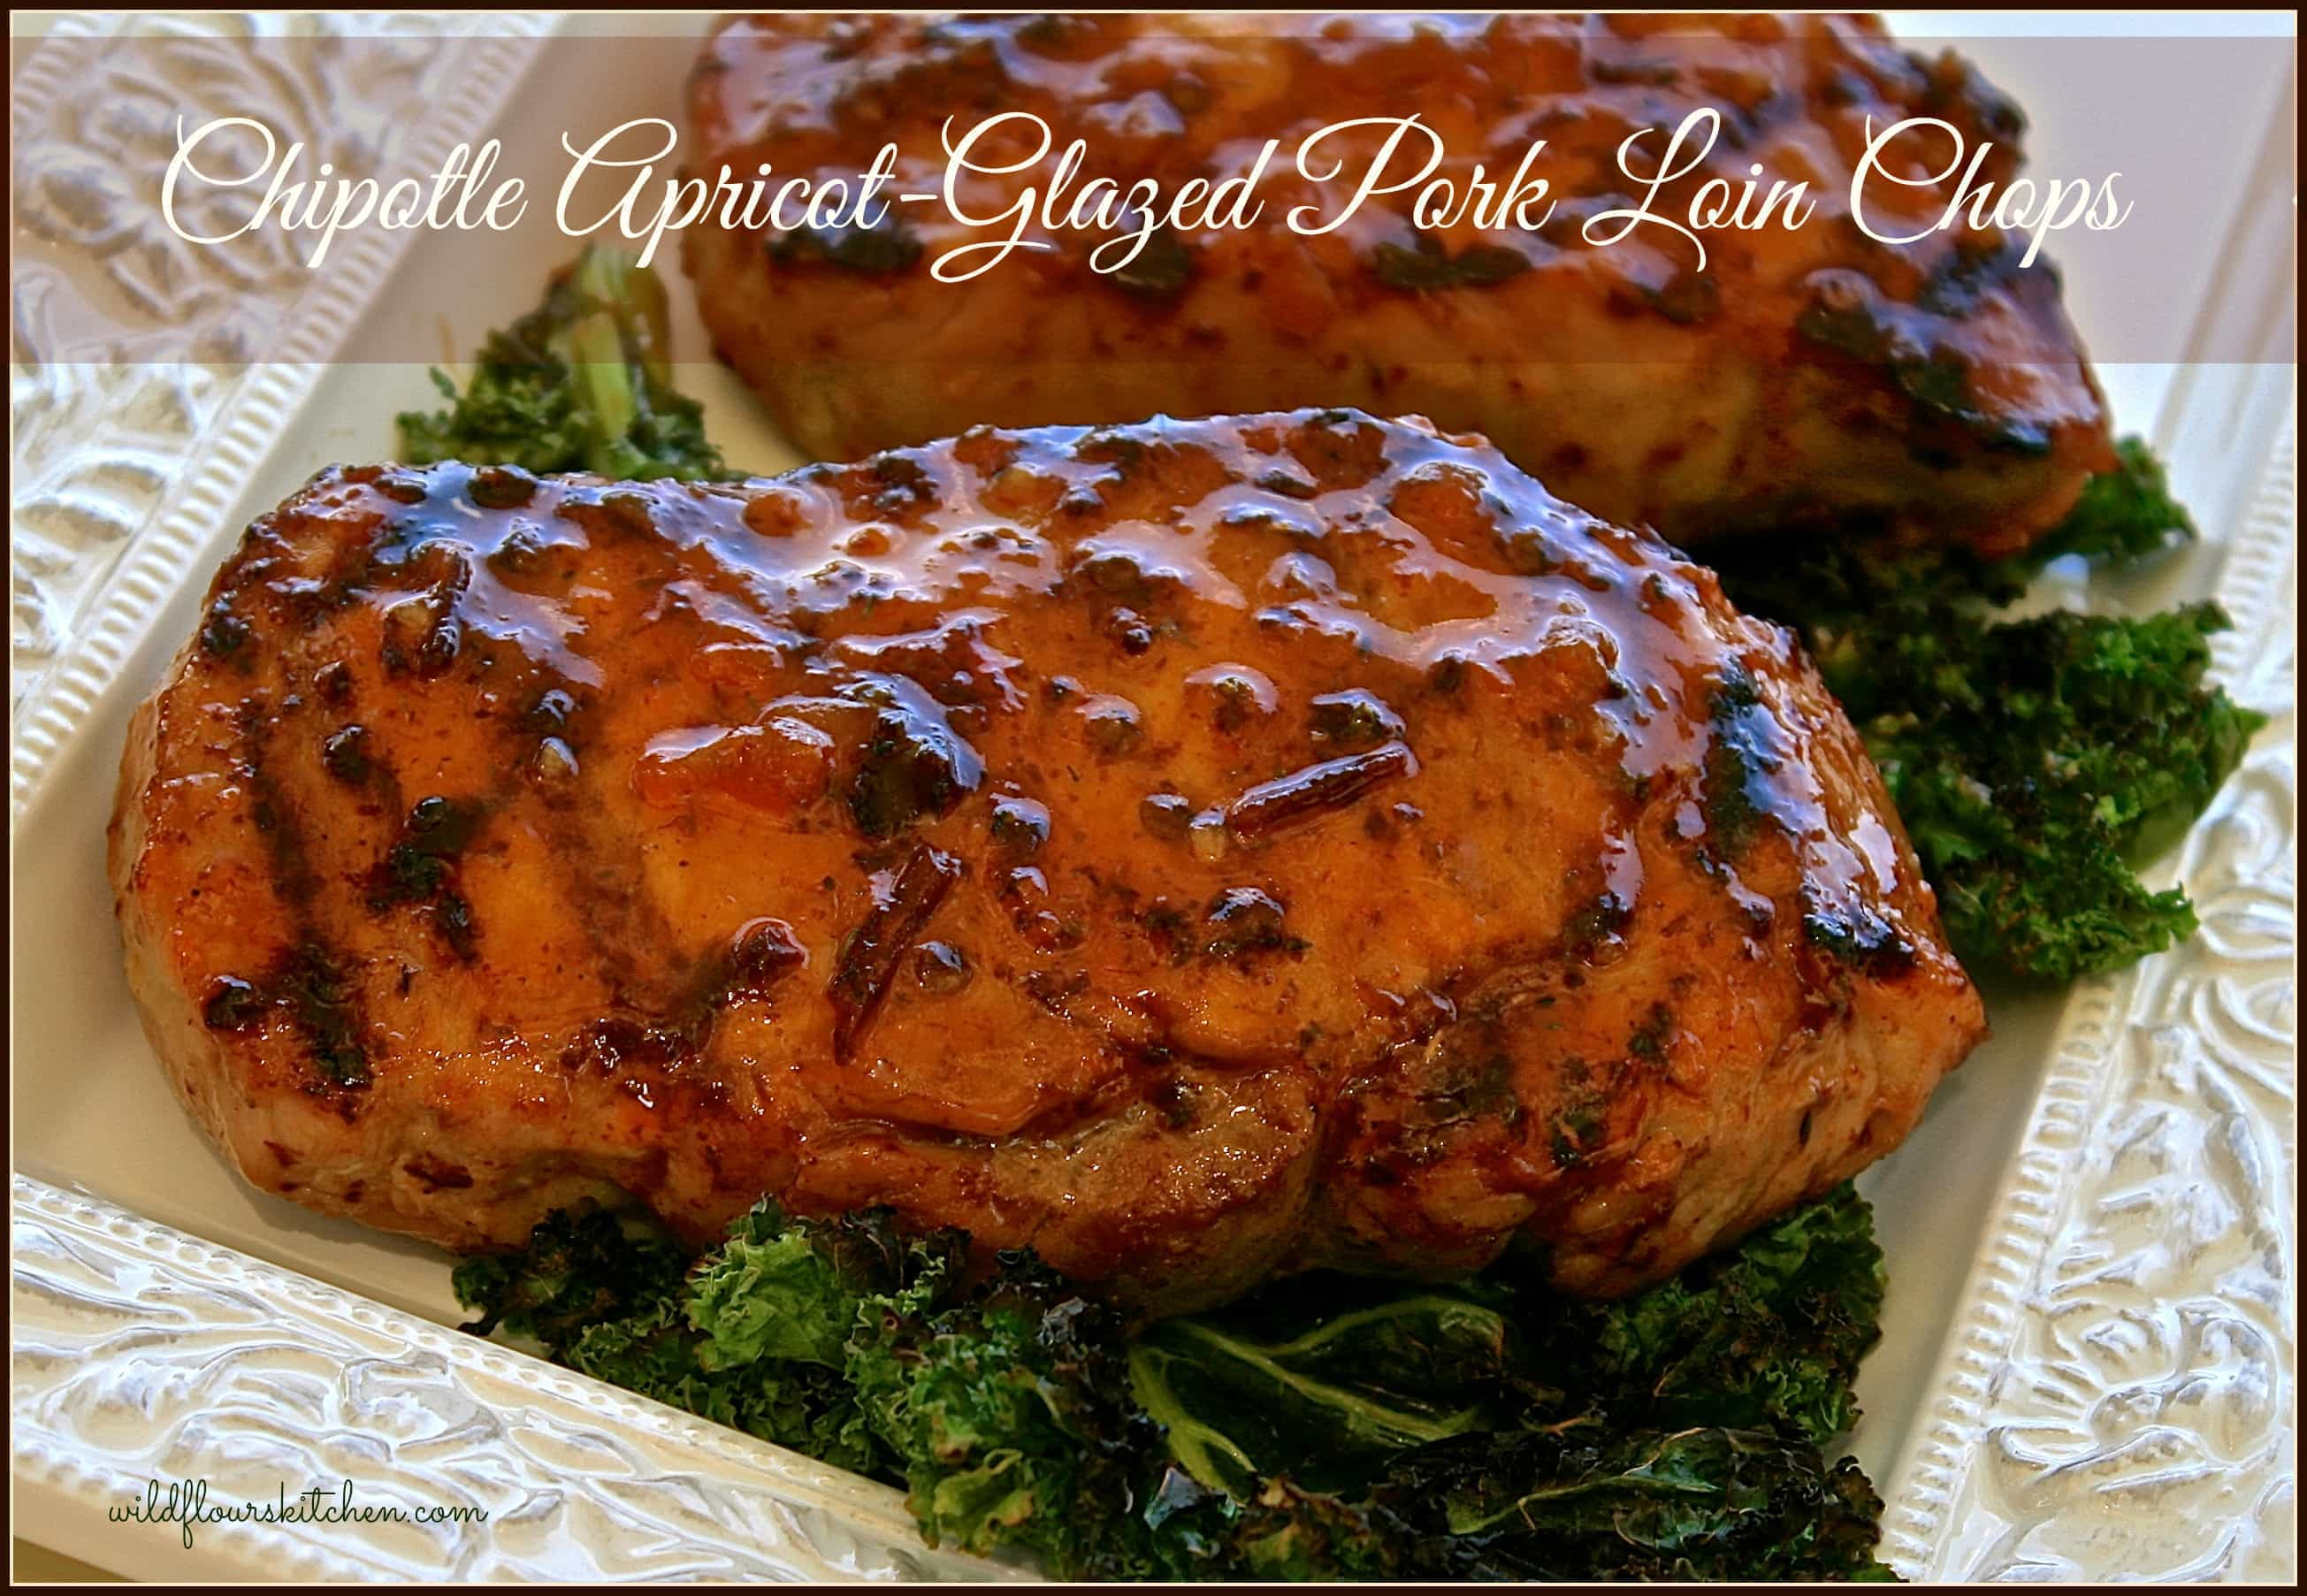 Grilled Chipotle Apricot-Glazed Pork Loin Chops